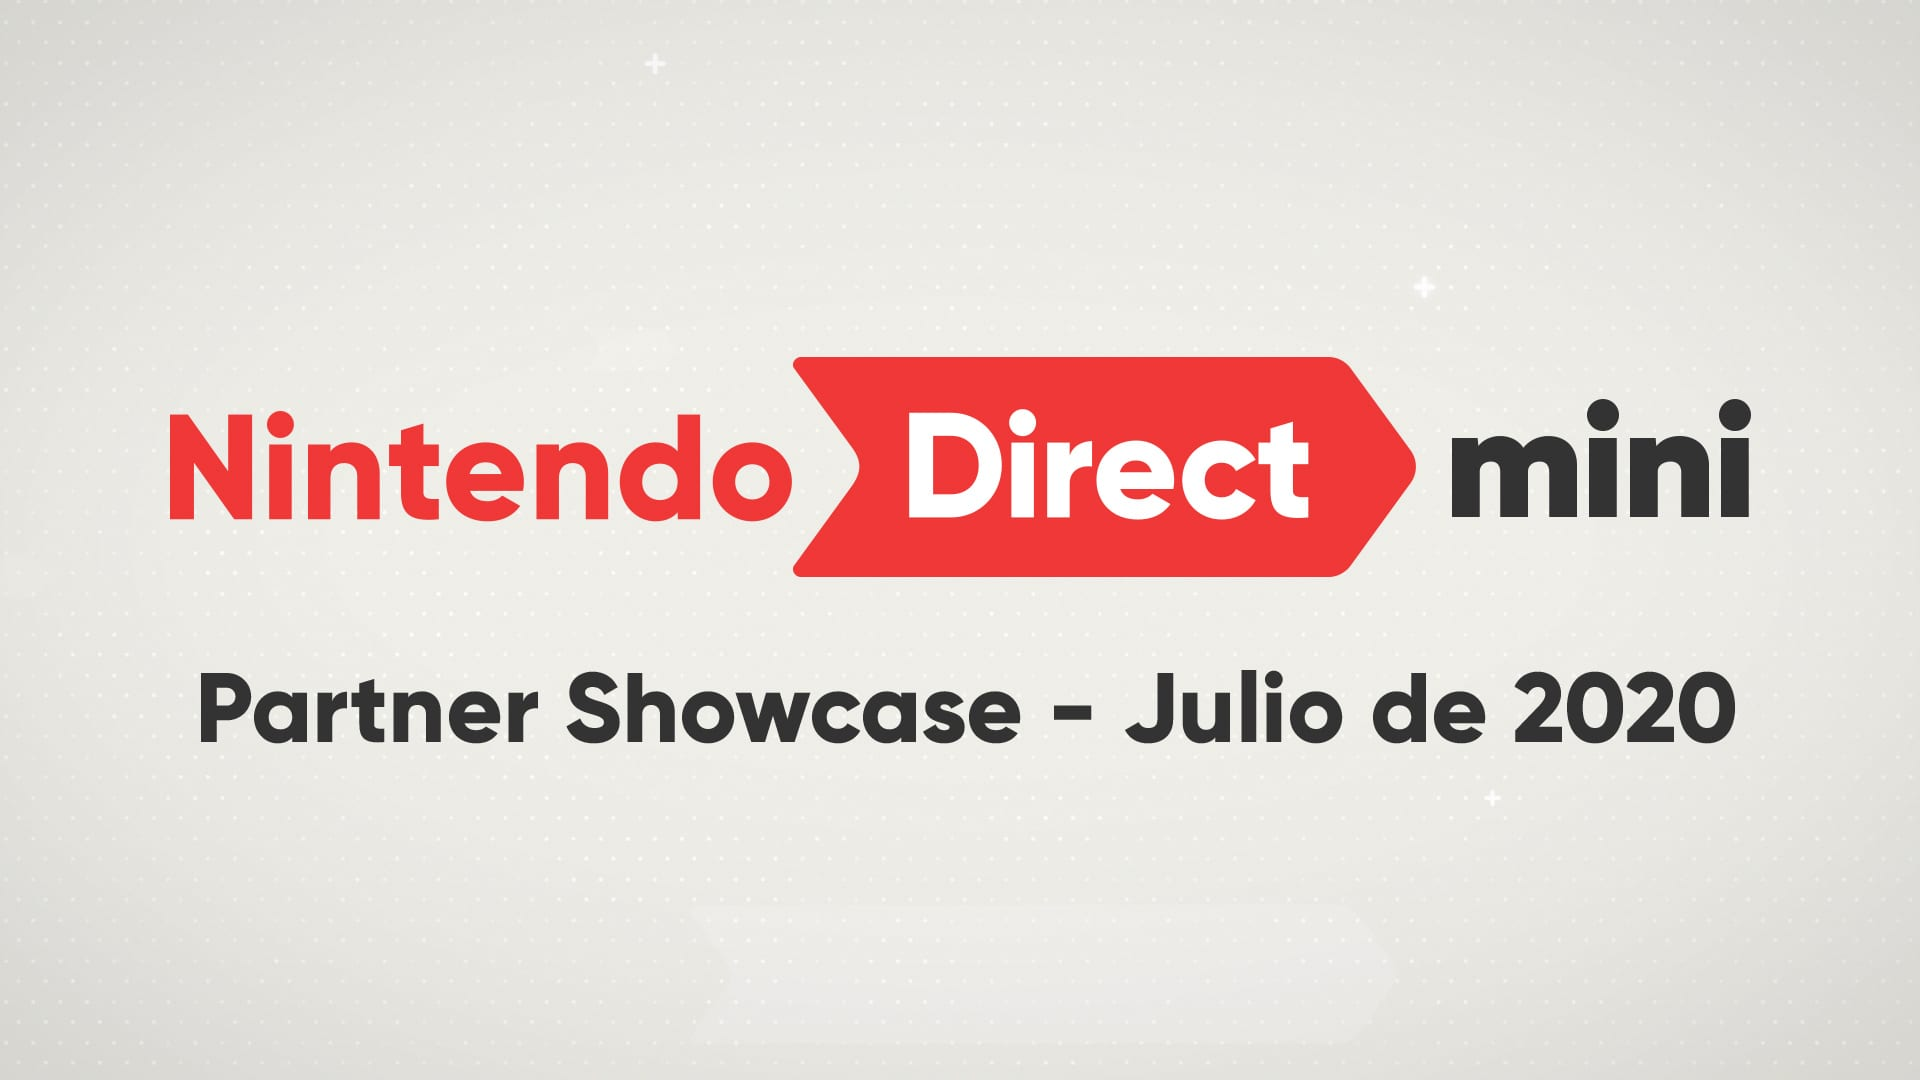 [Act.] Anunciado un nuevo Nintendo Direct Mini: Partner Showcase para hoy